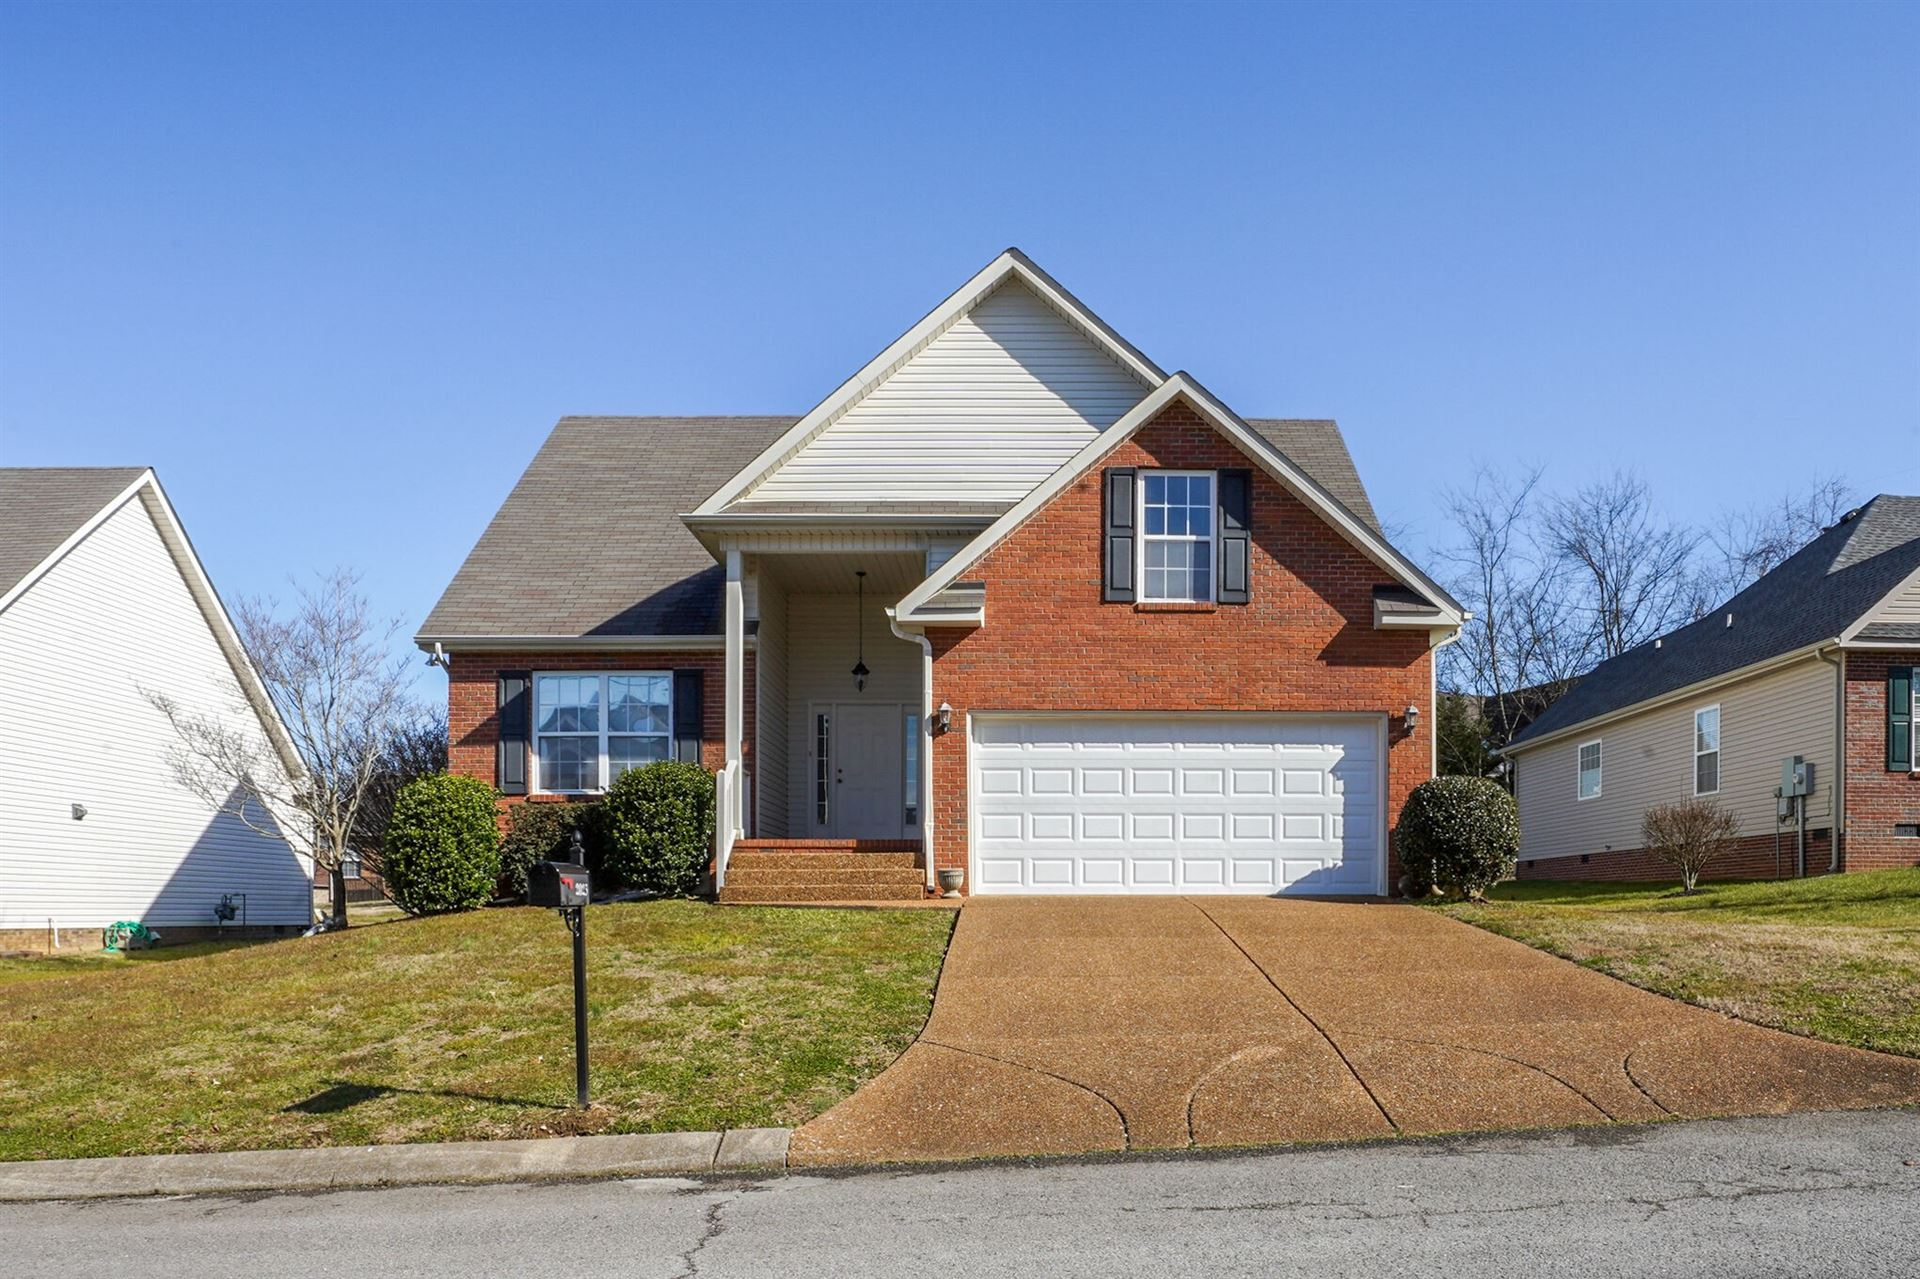 2023 Patrick Way, Spring Hill, TN 37174 - MLS#: 2232204